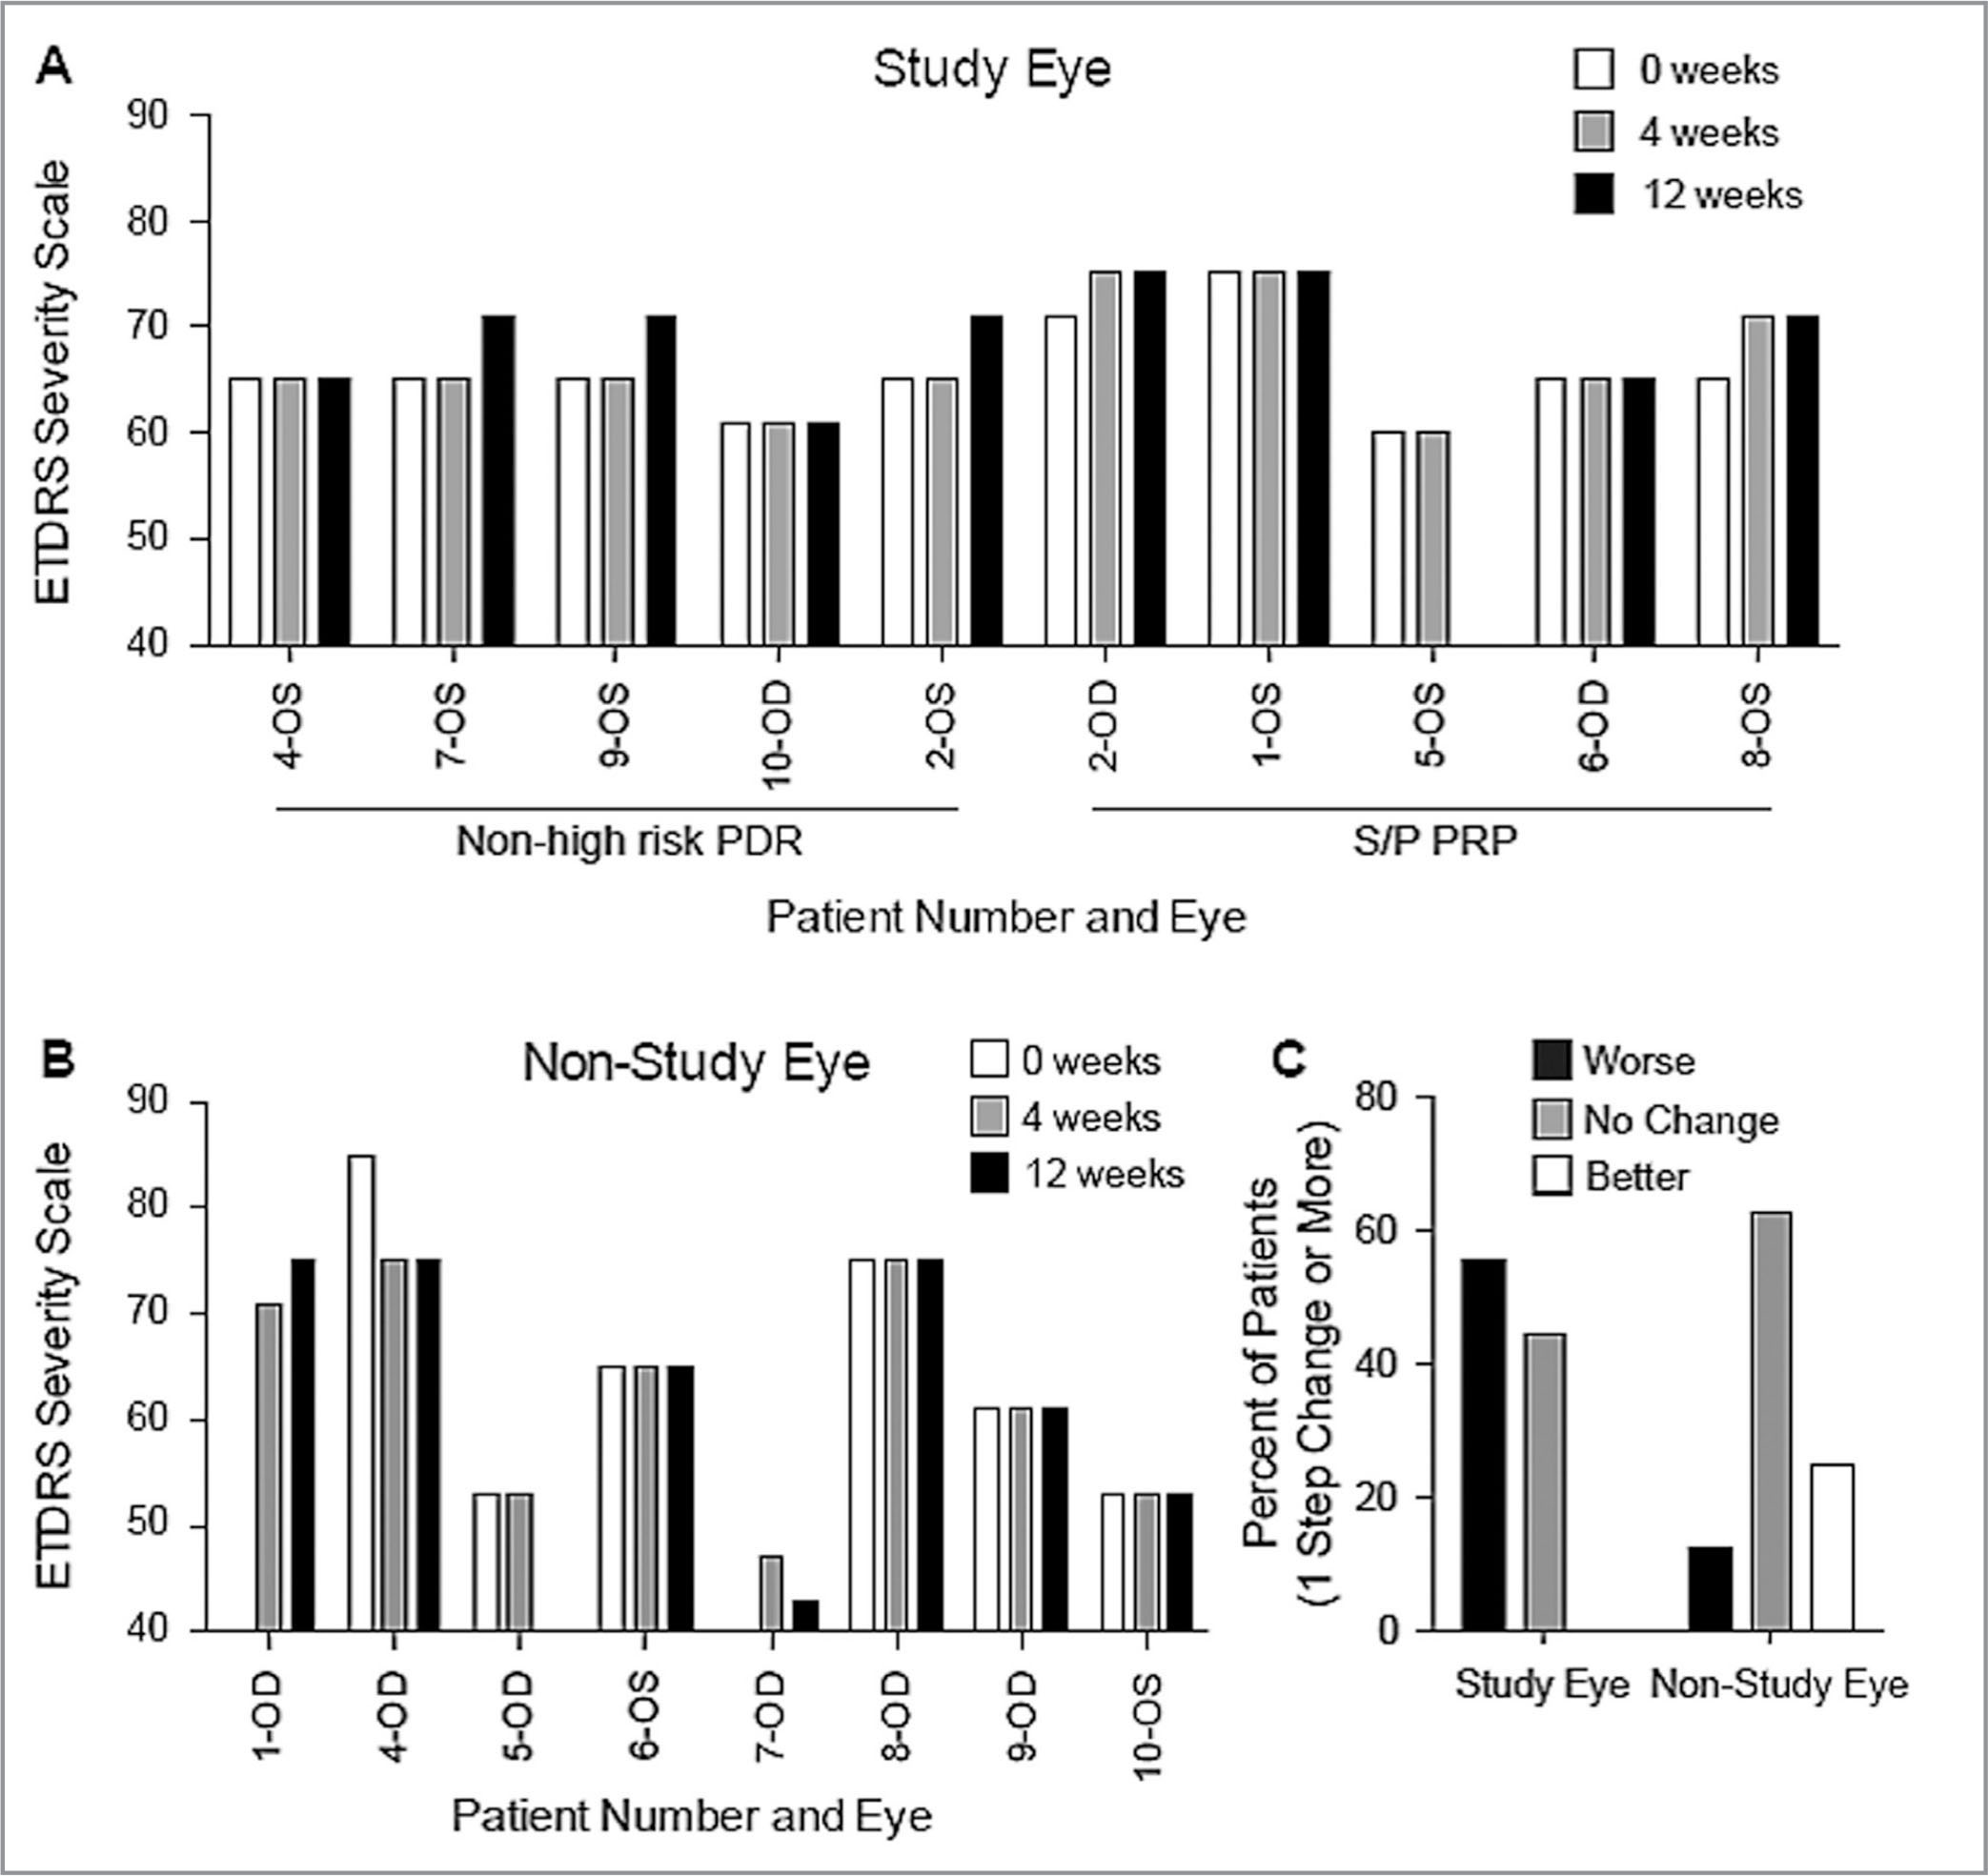 Results of Early Treatment Diabetic Retinopathy Severity (ETDRS) grading of fundus photographs. (A) Each study eye over time by participant and group. (B) Each contralateral non-study eye over time. (C) Breakdown of percentage stable, worsening, or improving on one or more step of ETDRS severity.